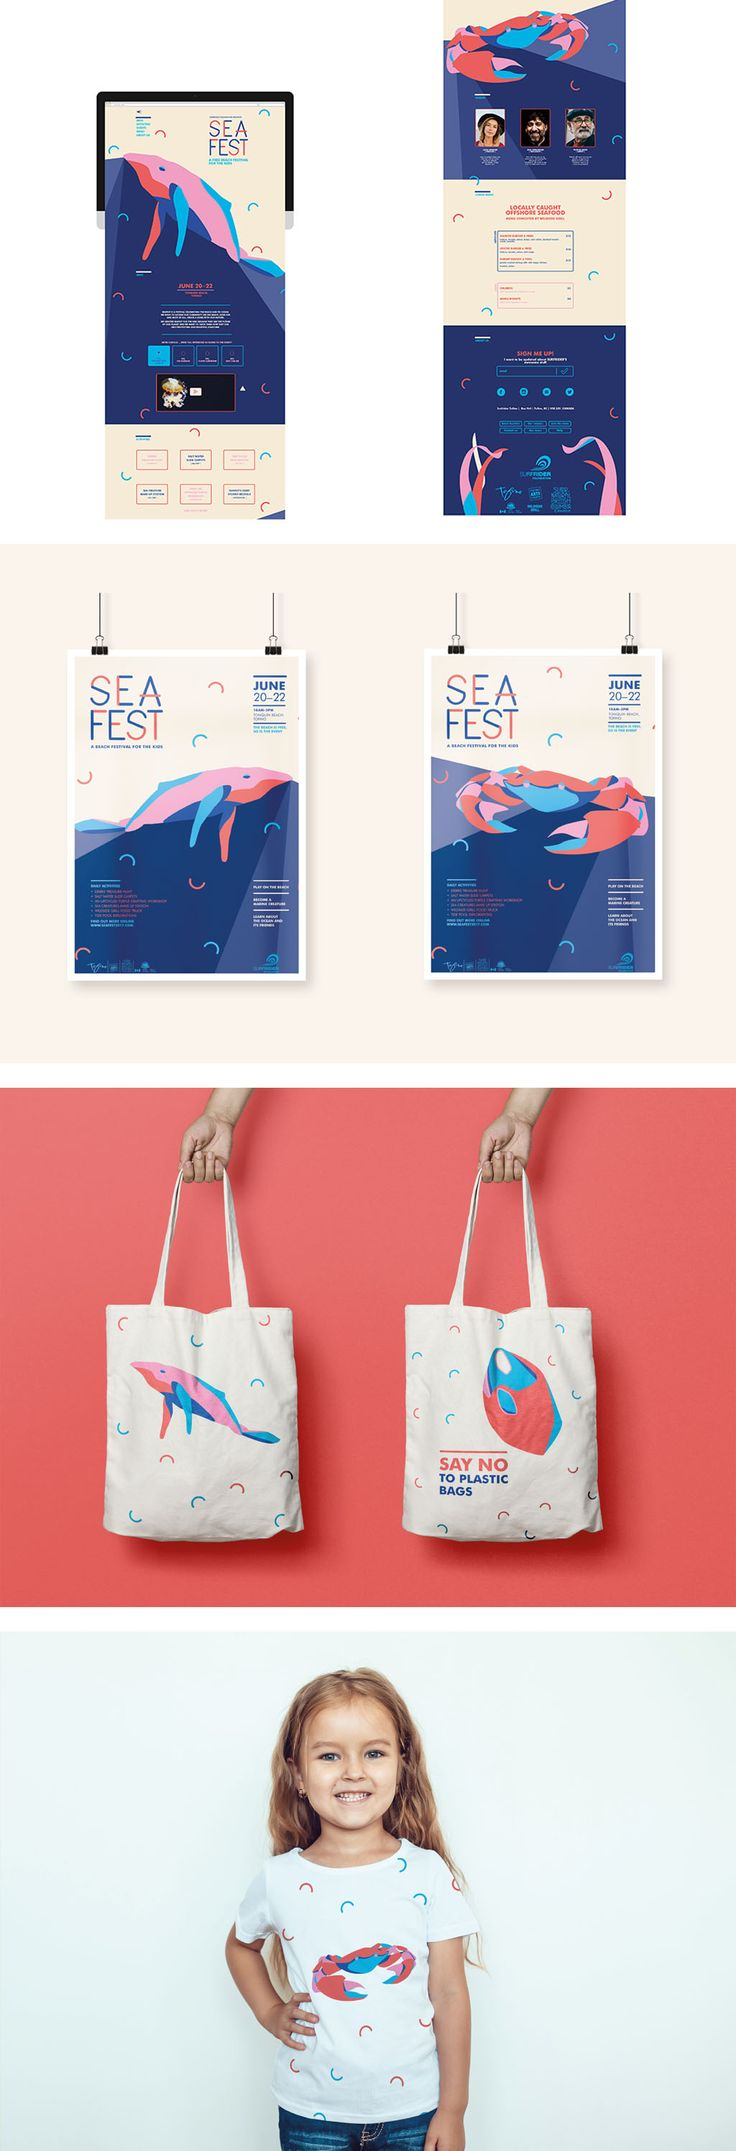 Festival Event, Branding, Digital, Tote Bag by Laurie Boudreault, Shillington Graduate. View more student work --> https://www.shillingtoneducation.com #MadeAtShillington